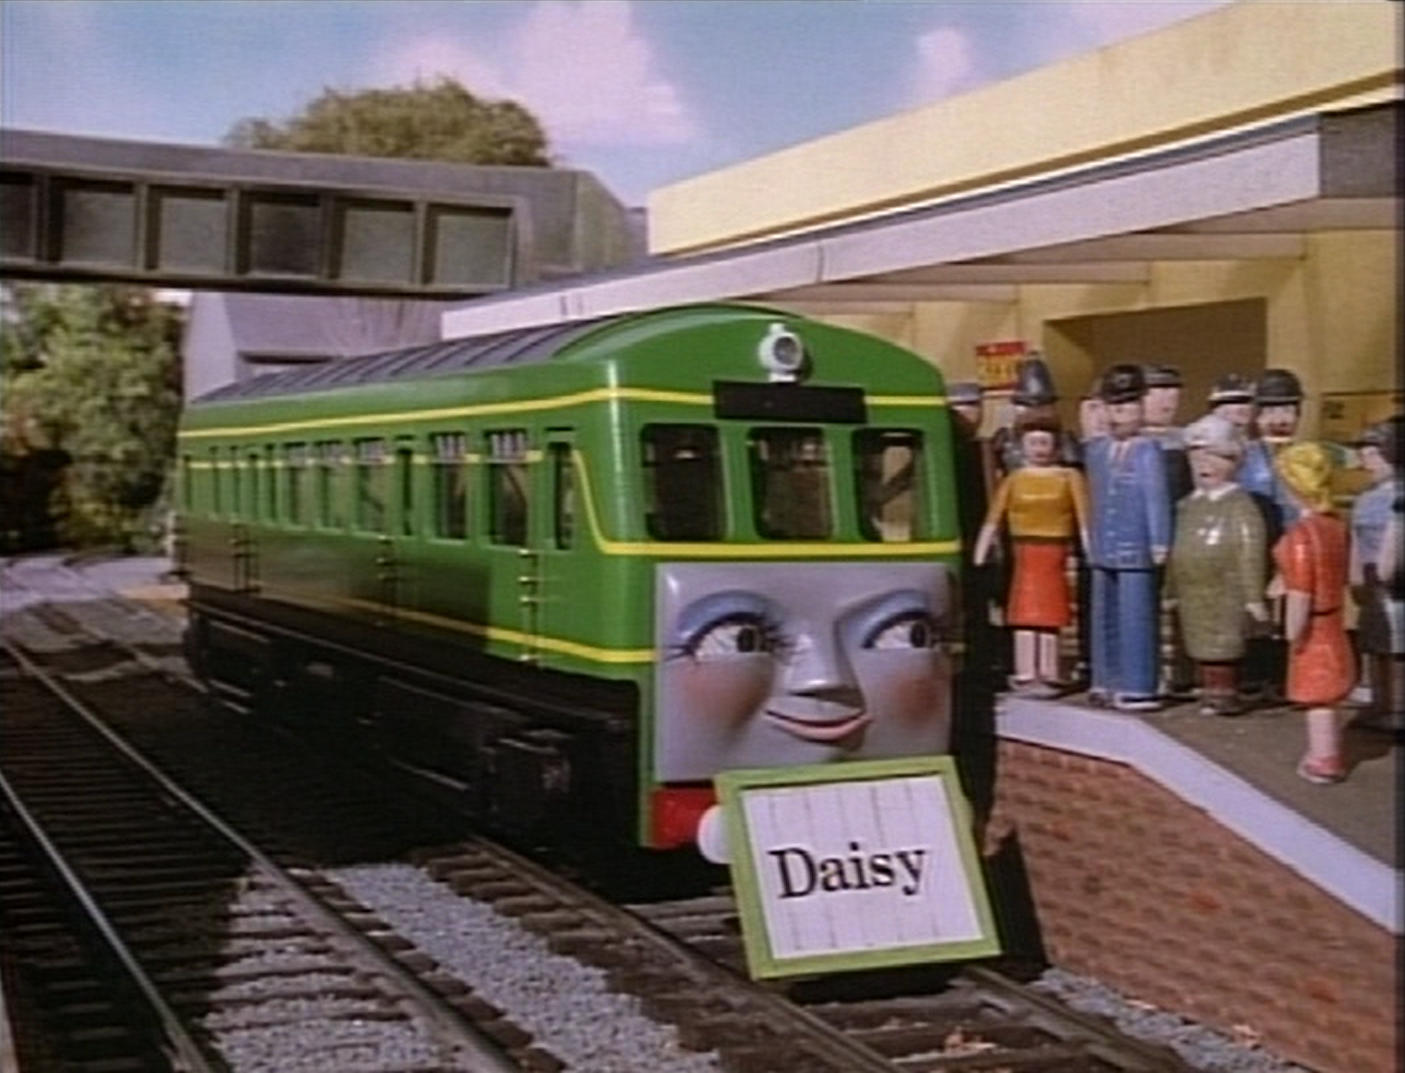 File:Daisywithnameboard.png